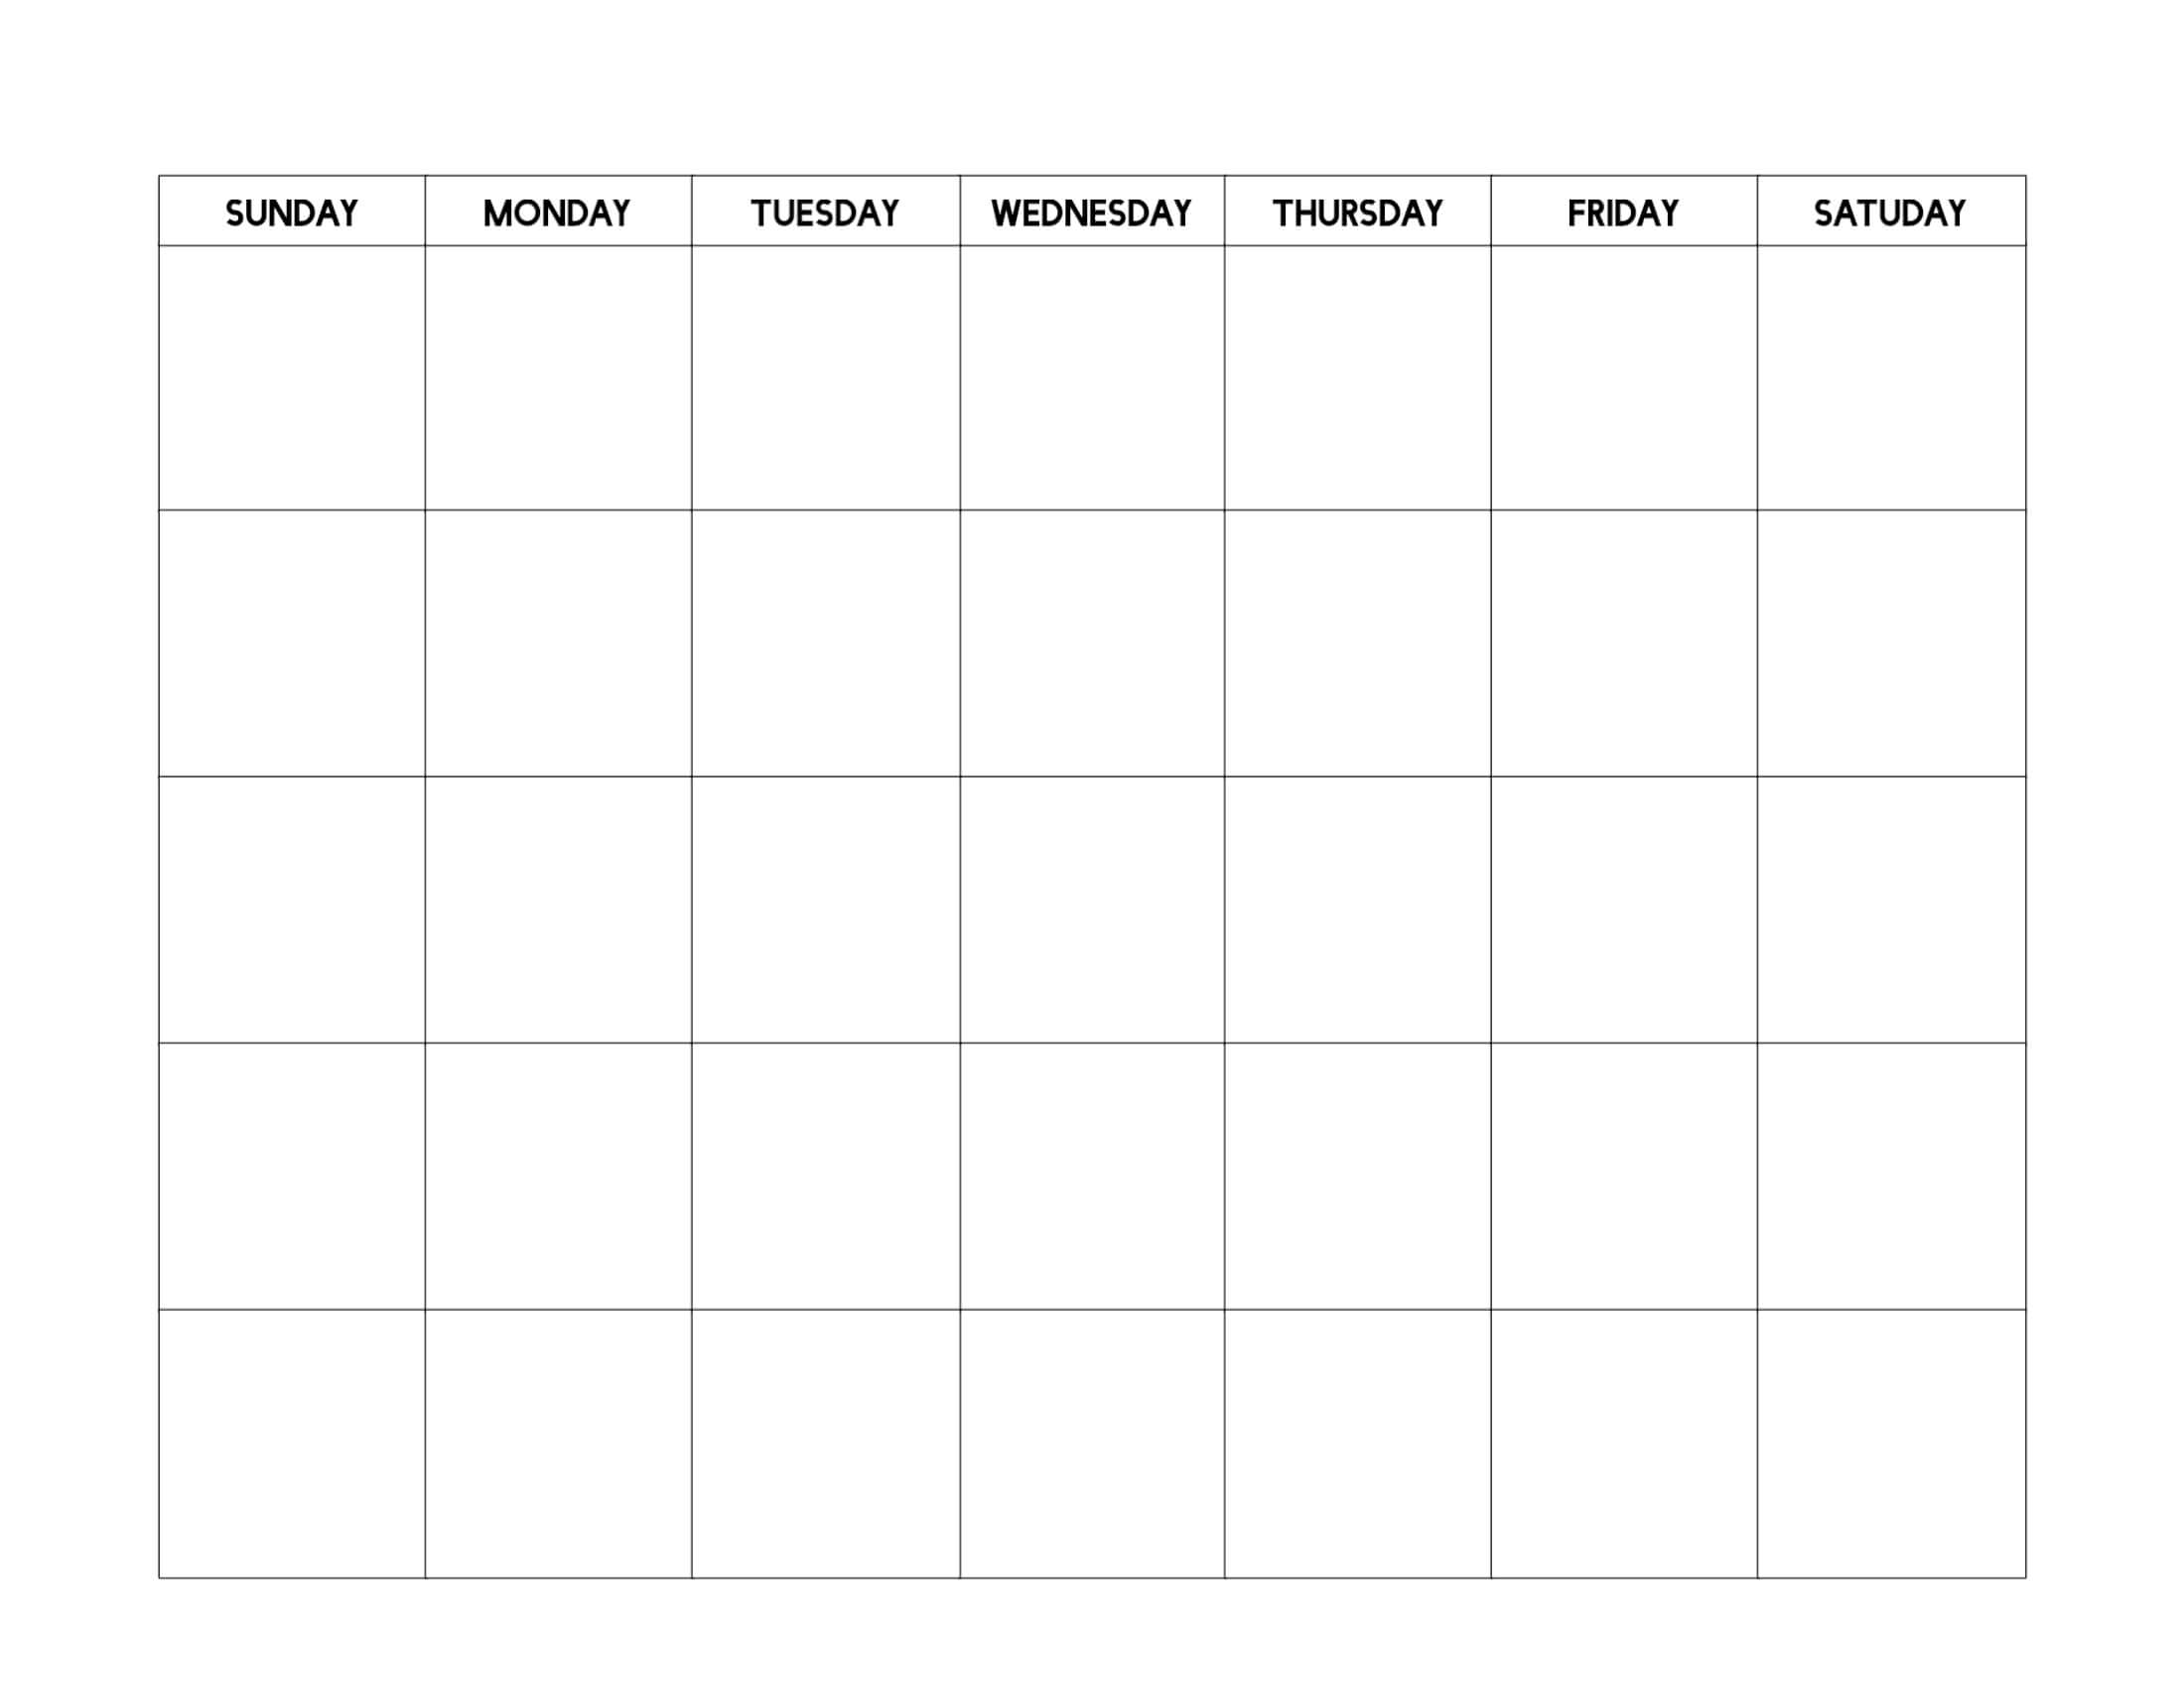 Free Printable Blank Calendar Template - Paper Trail Design Inside Blank Calender Template